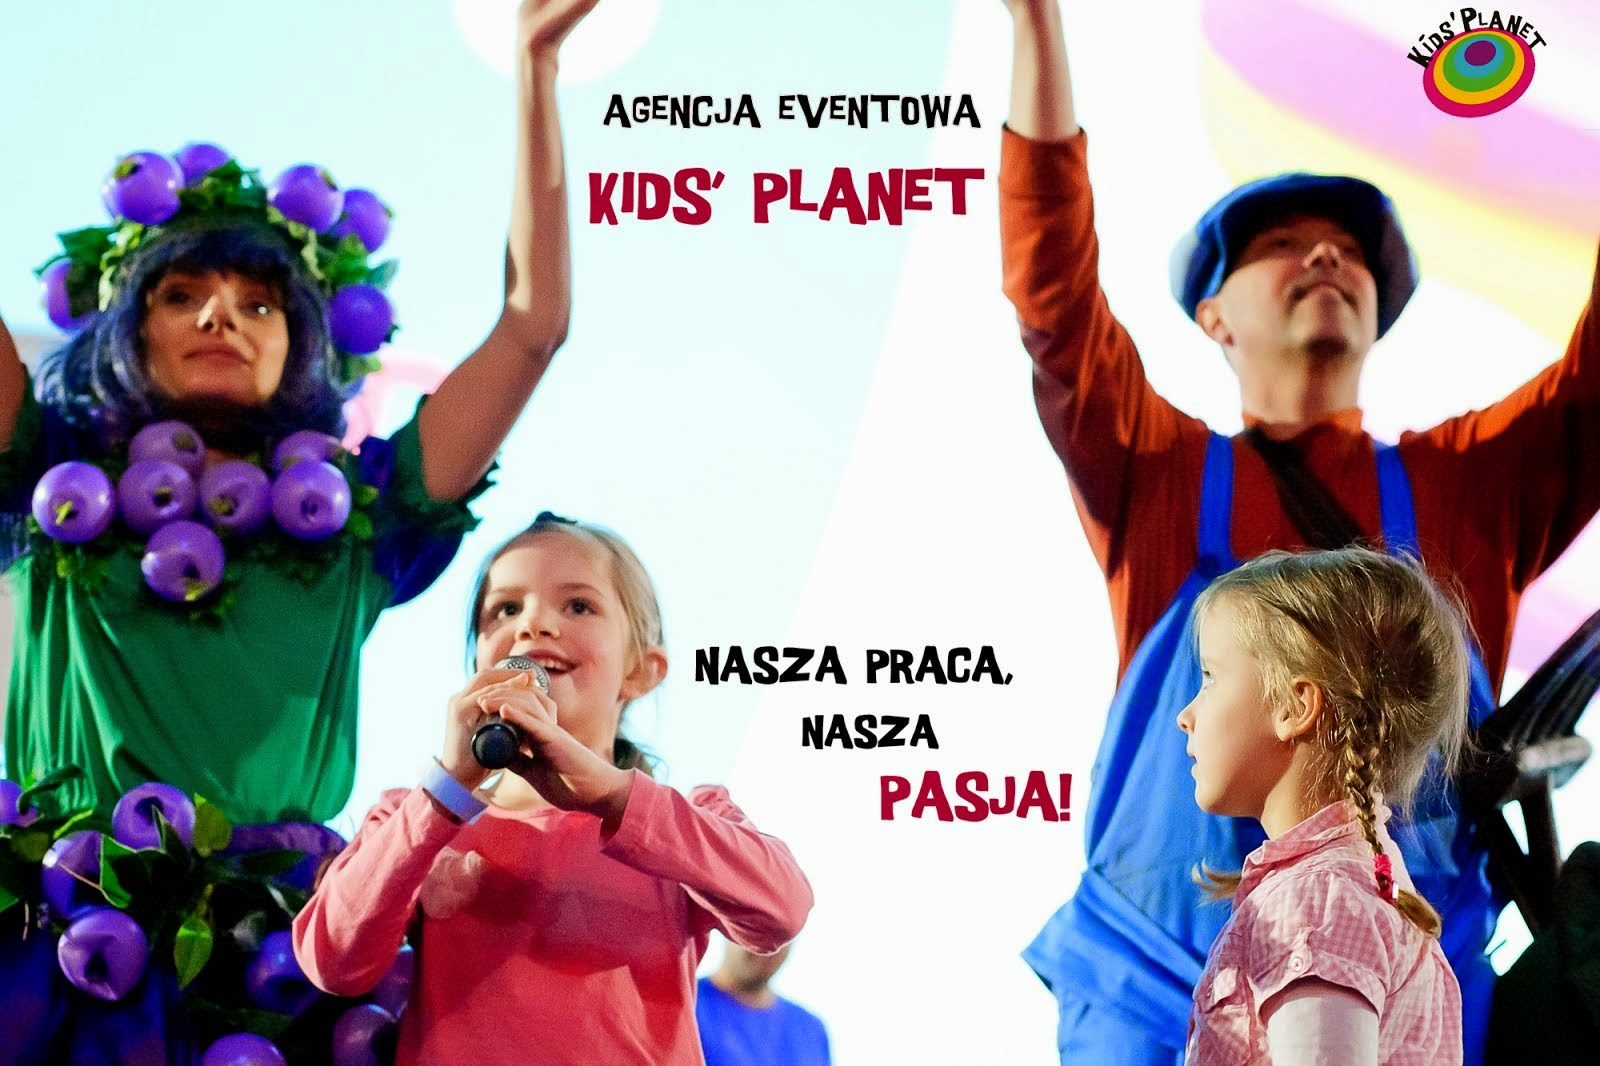 Agencja eventowa Kids' Planet